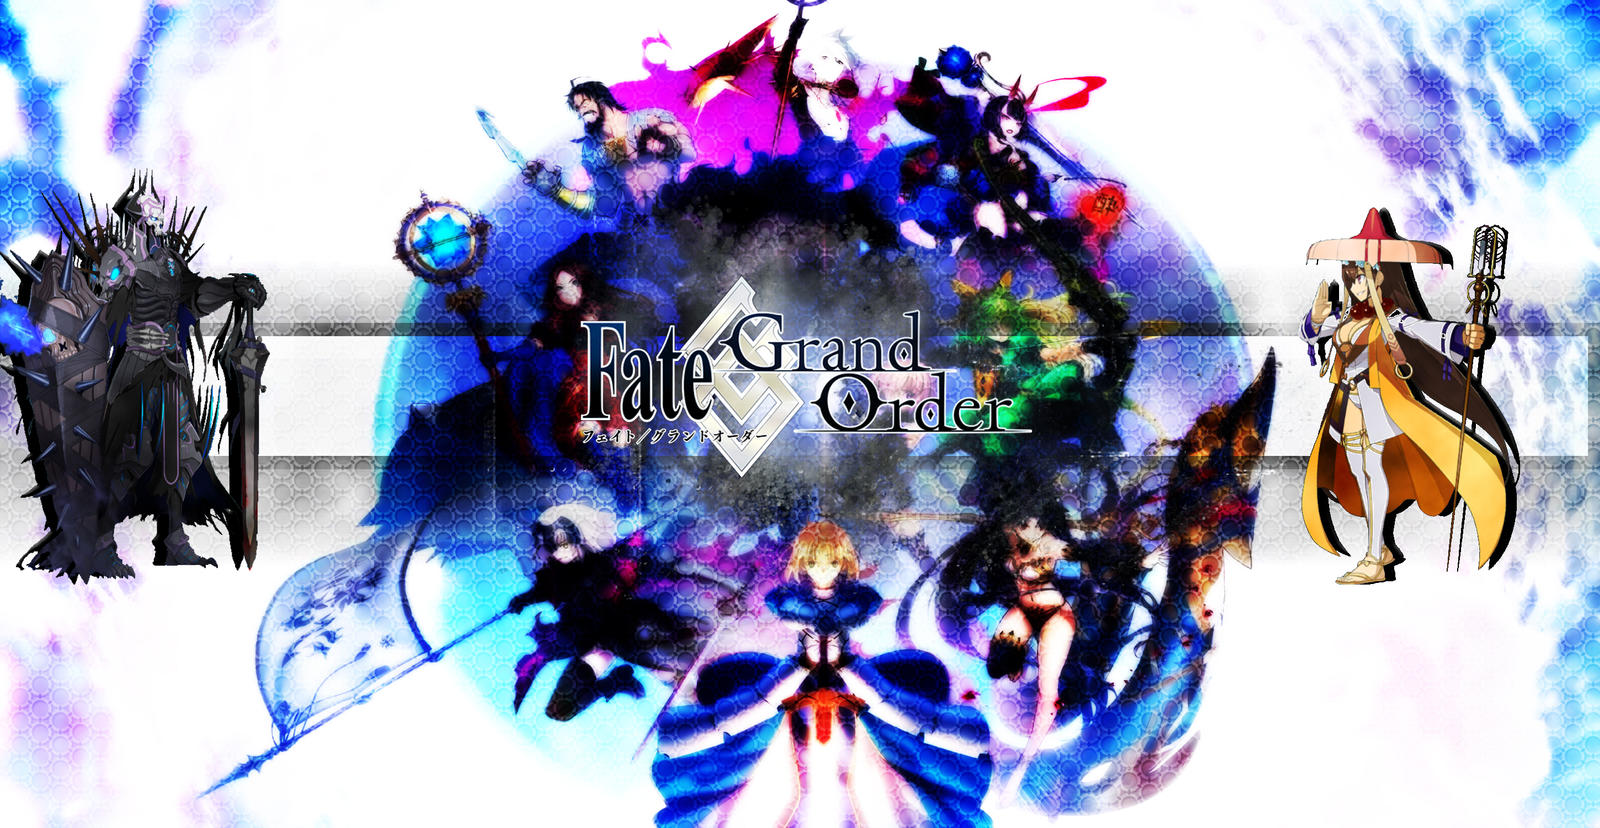 Fate Grand Order Wallpaper Title By Mortred039ex On Deviantart